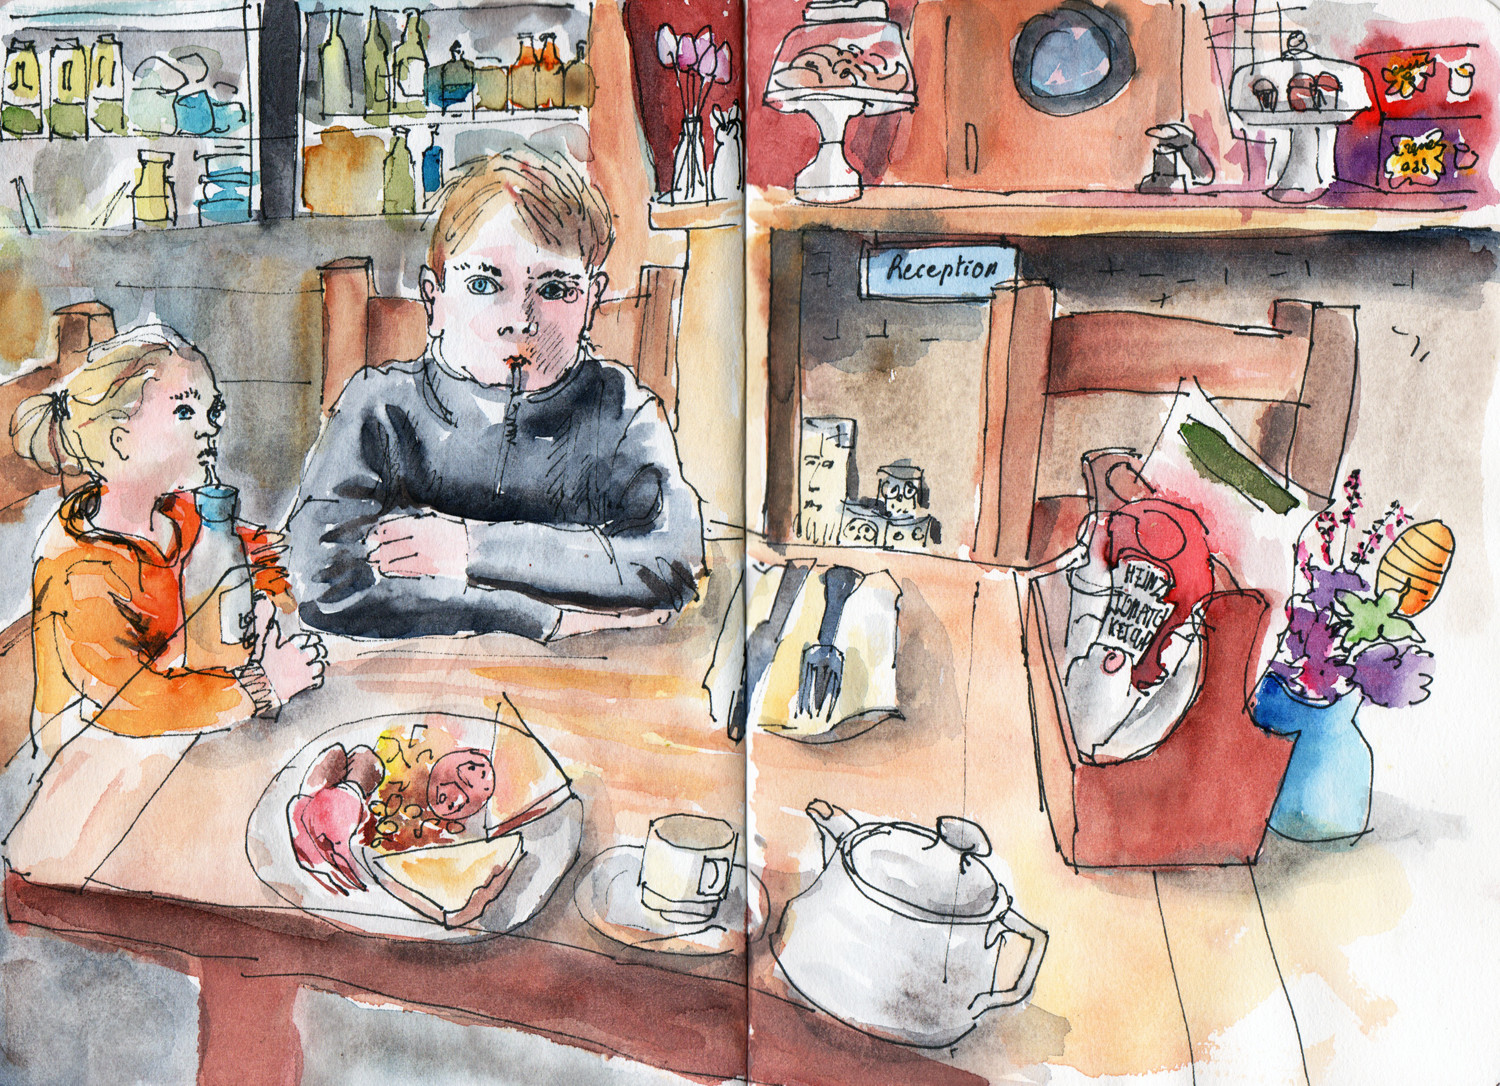 Breakfast in Cafe - Pen and watercolour sketch